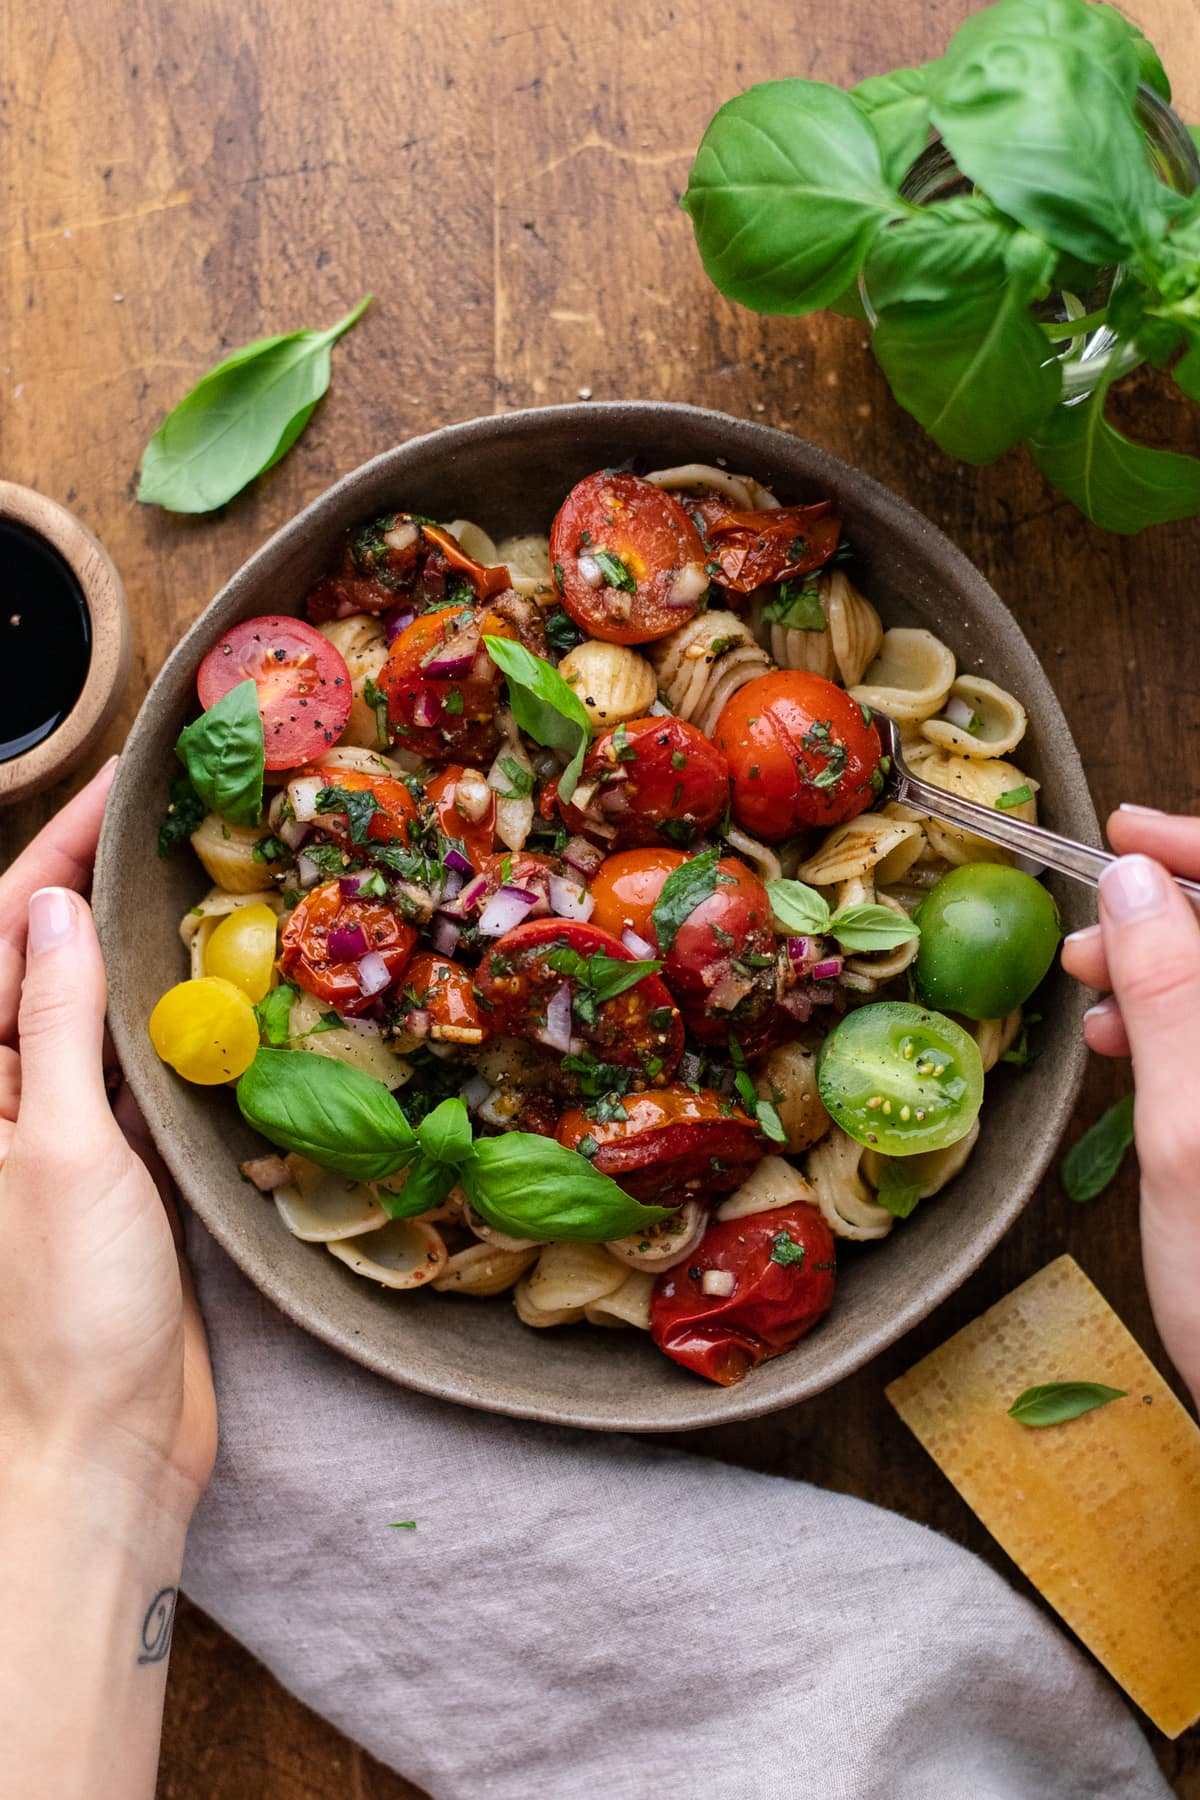 hands holding bowl with a fork in it of pasta with bruschetta in it on brown wooden board with herbs and gray napkin arranged around it.